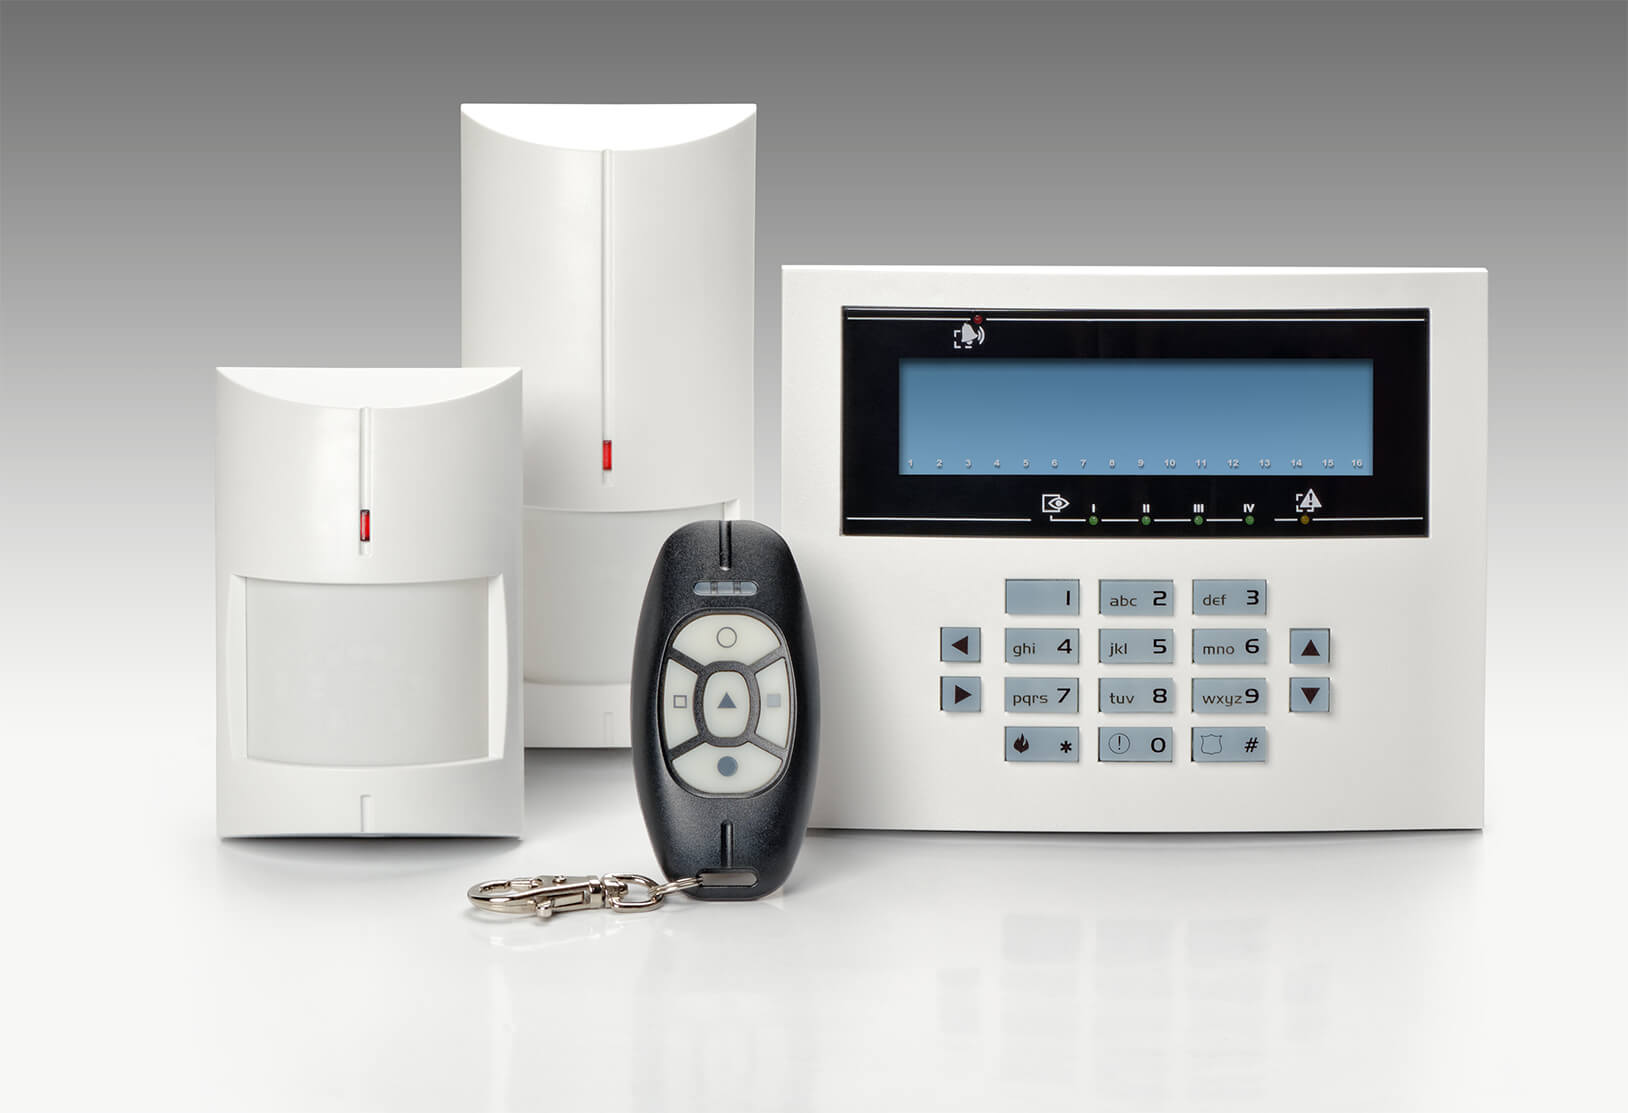 Commercial Burglar Alarms For Business in Lambeth SE27  - Local Lambeth SE27 burglar alarm company.Call 02078872244 - Dedicated to Safety & Security. Companies, shops and homes ..